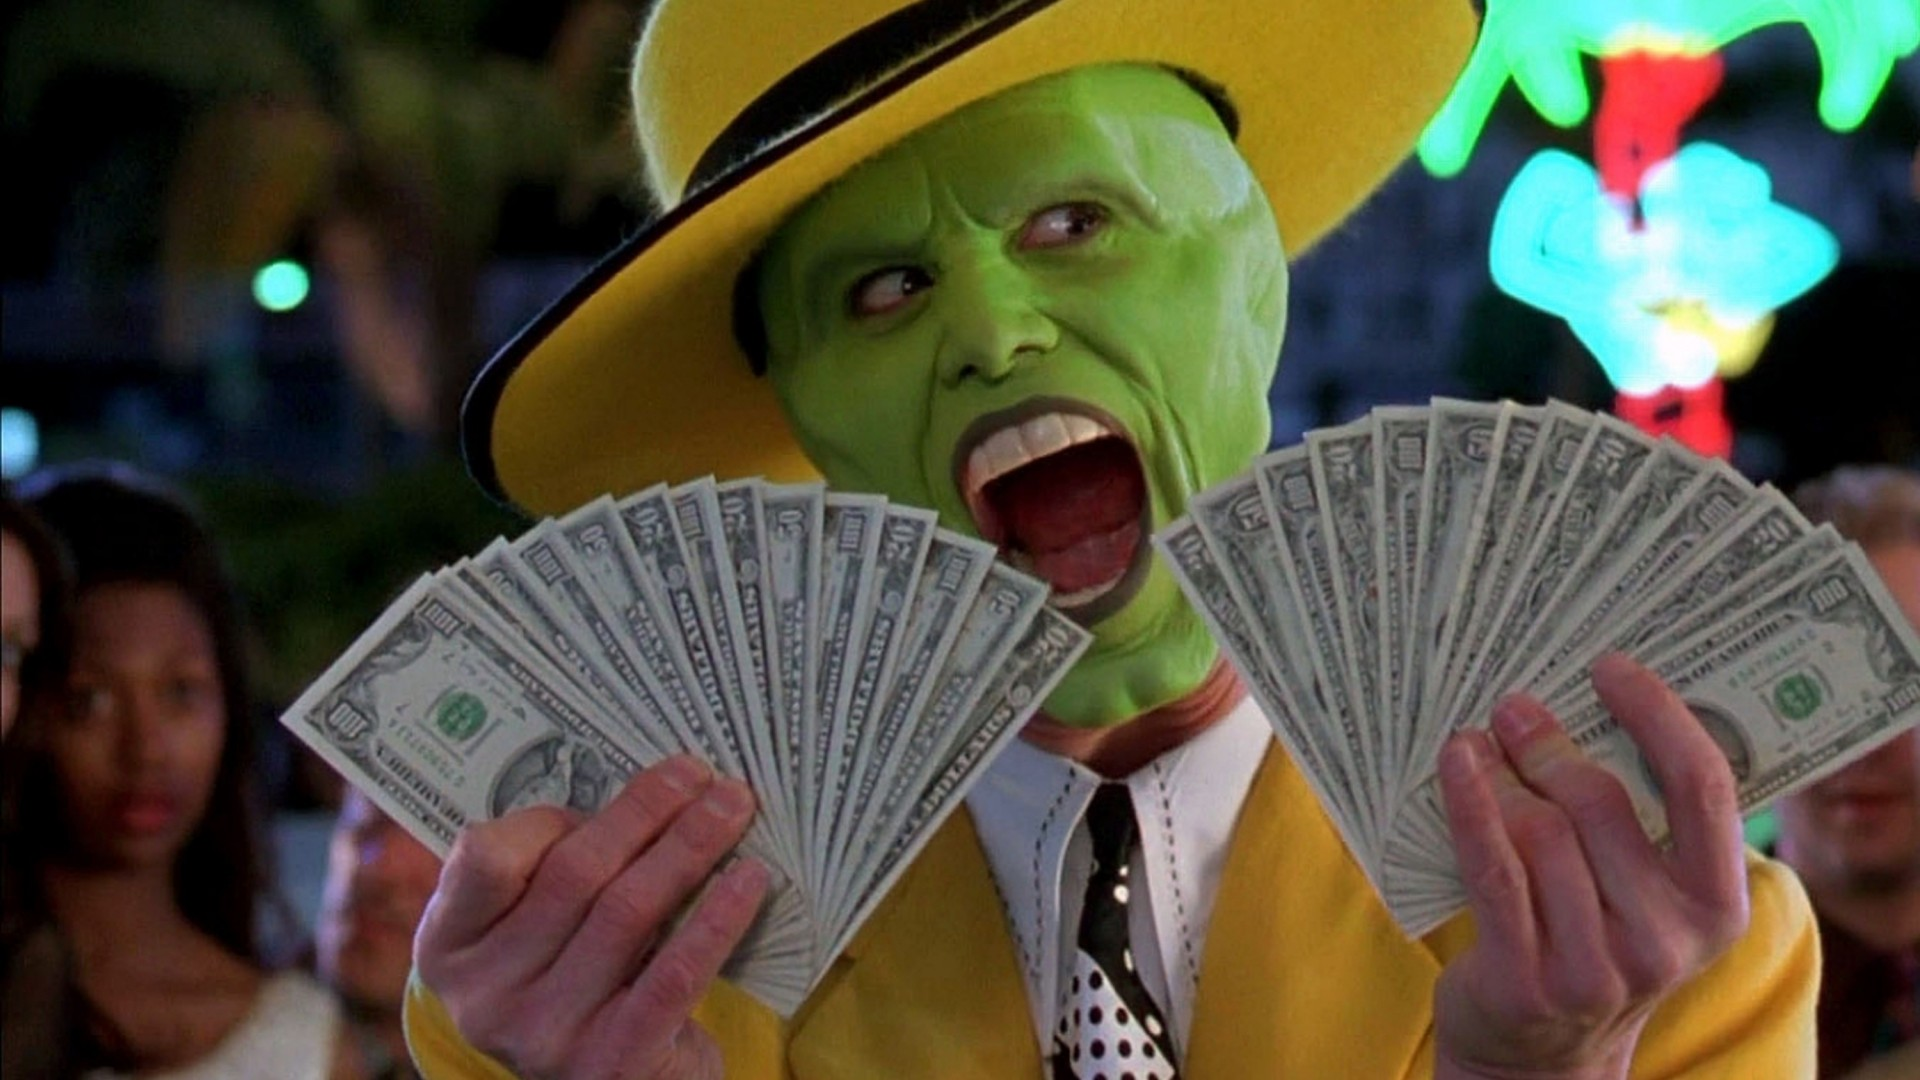 3784658-movies_money_screenshots_the_mask_jim_carrey_1920x1080_65497